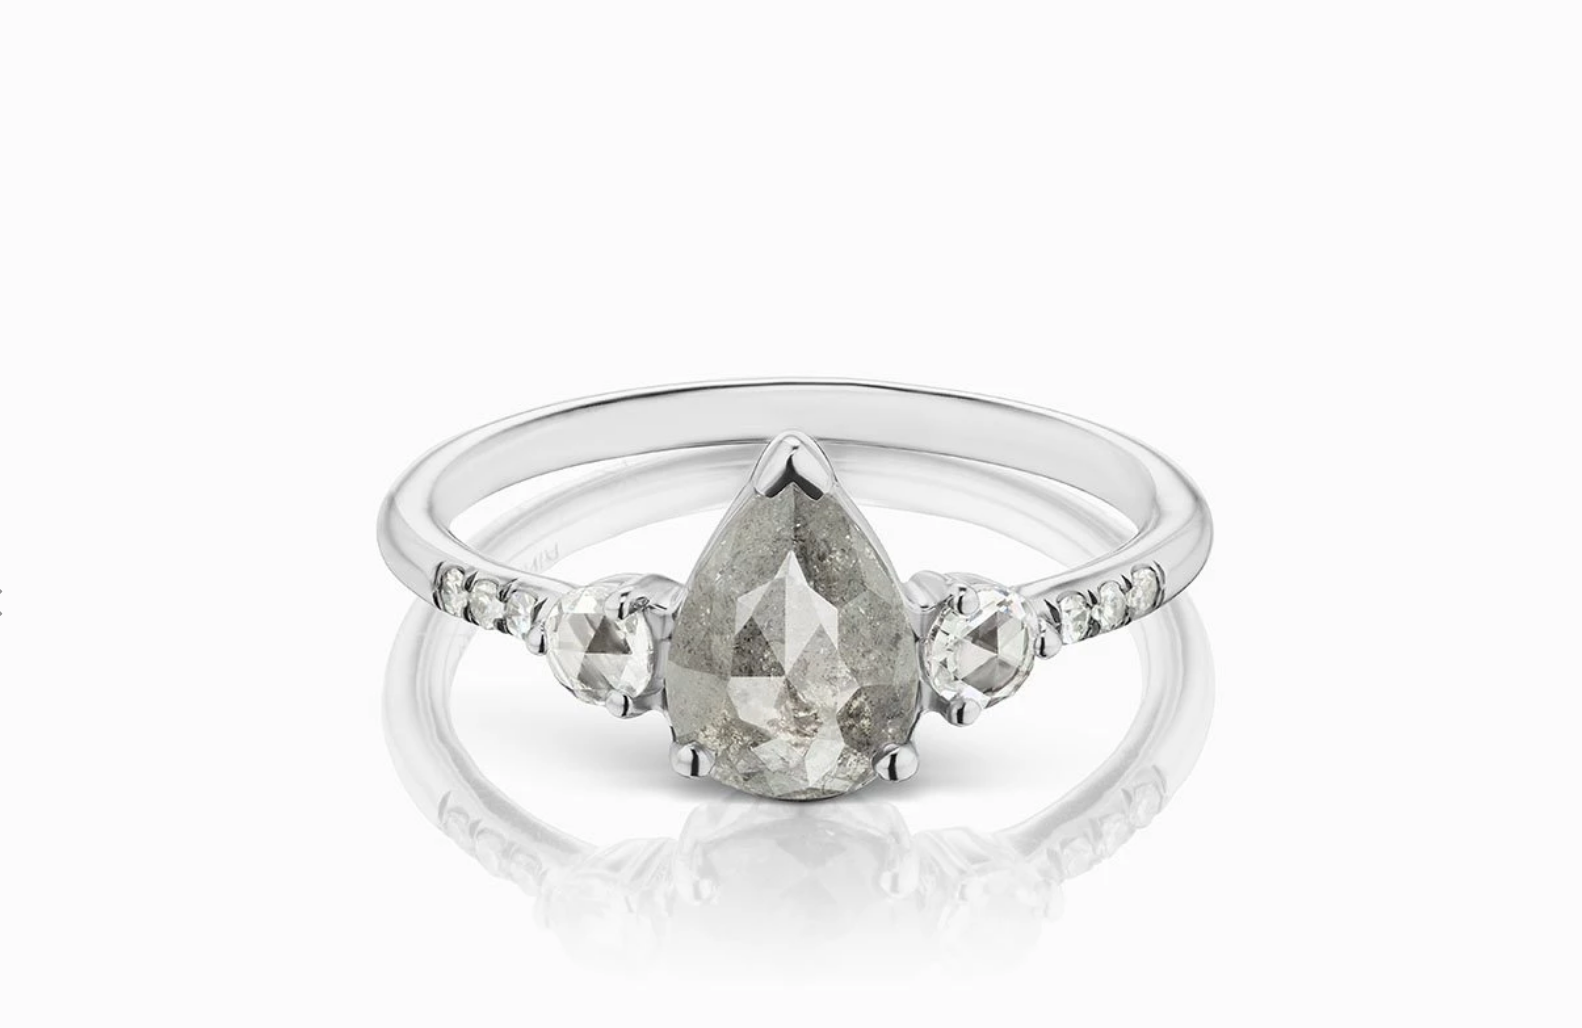 ManiaMania 14K White Gold Pear Rose Cut Diamond Grand Radiance Ring